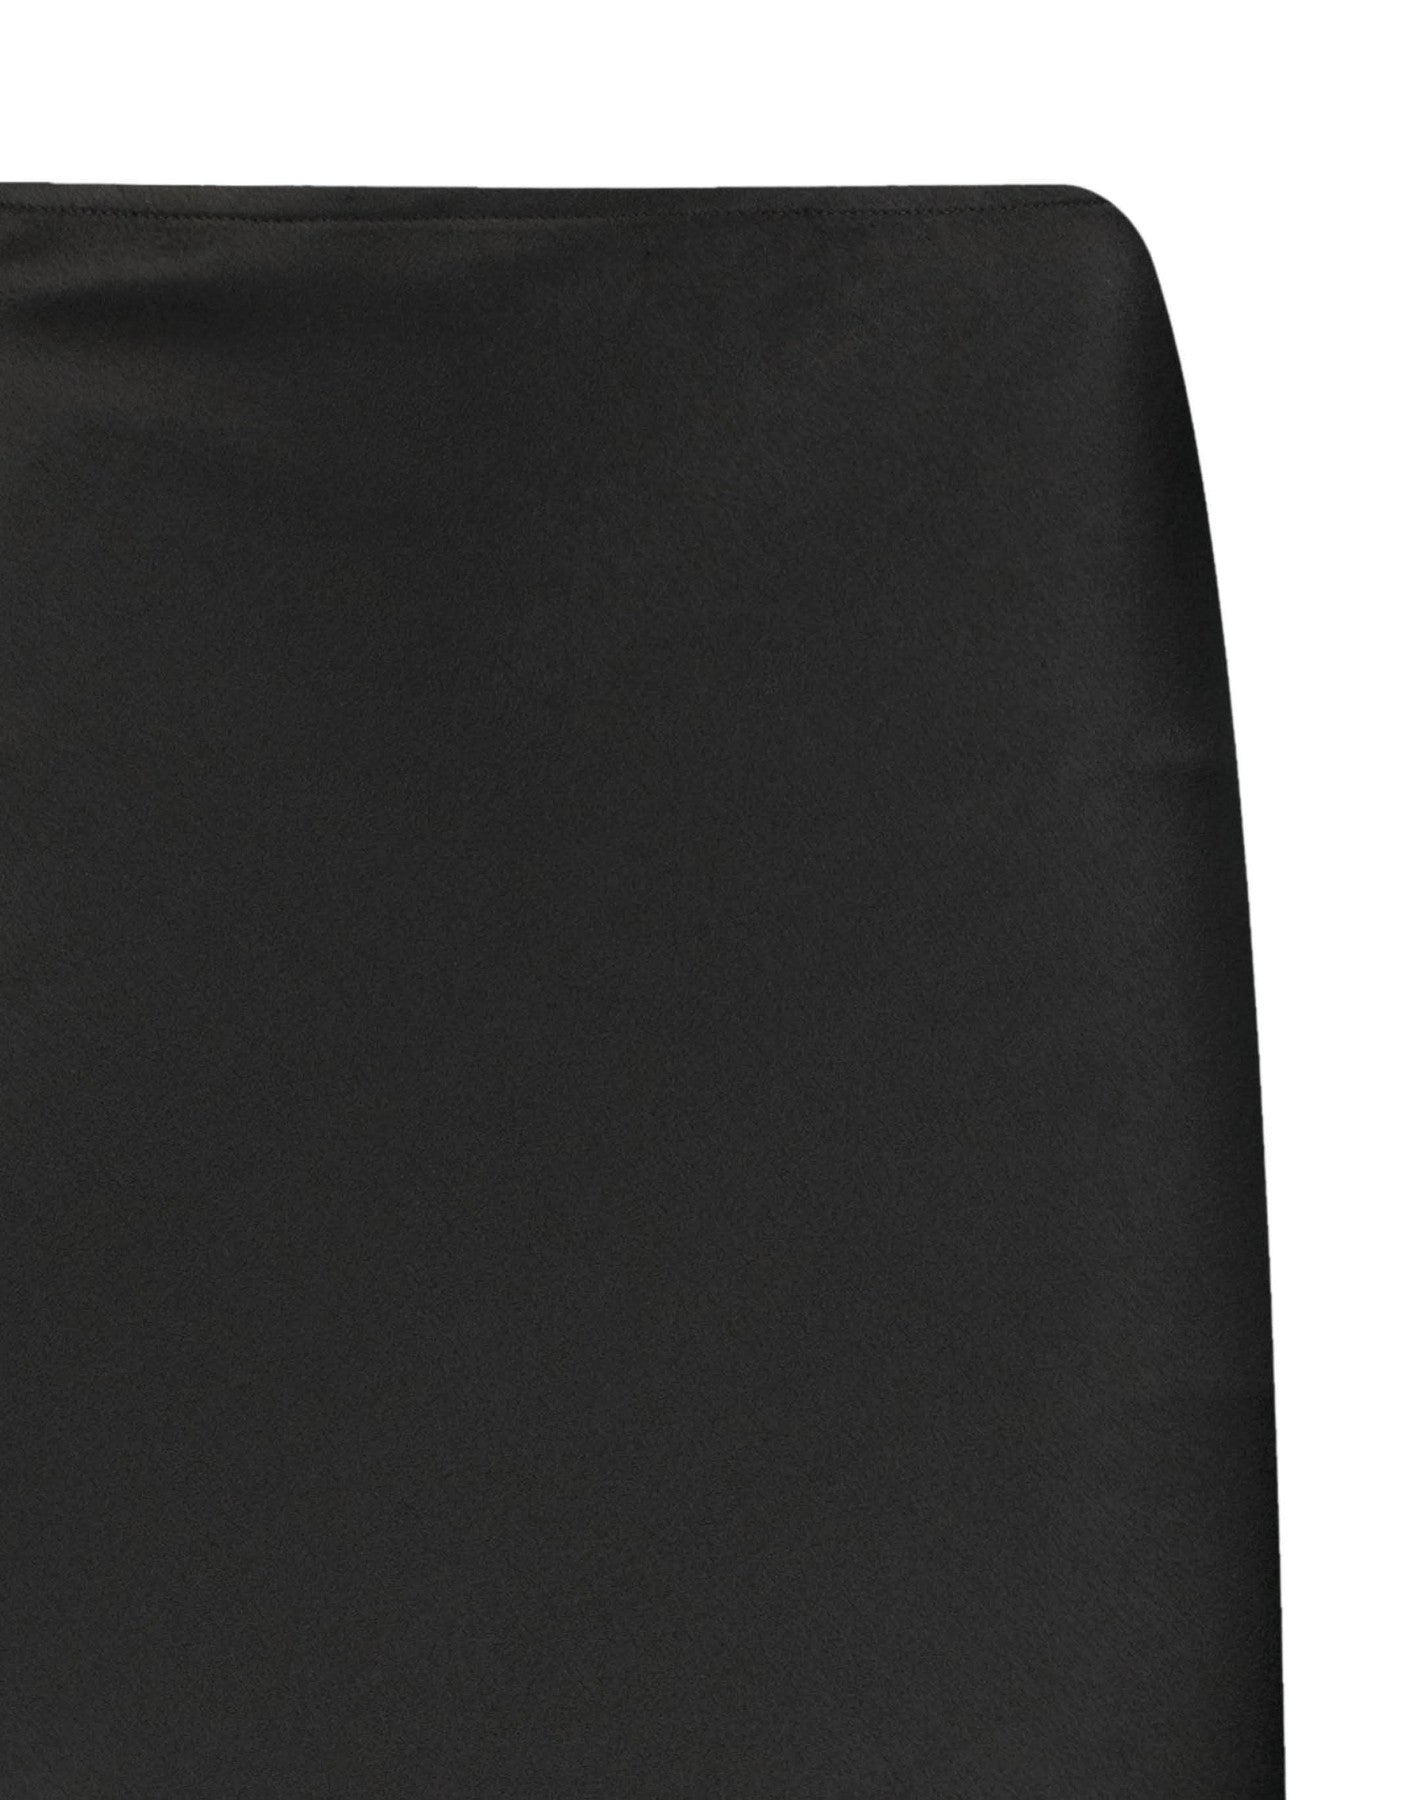 Satin Skirt | Black